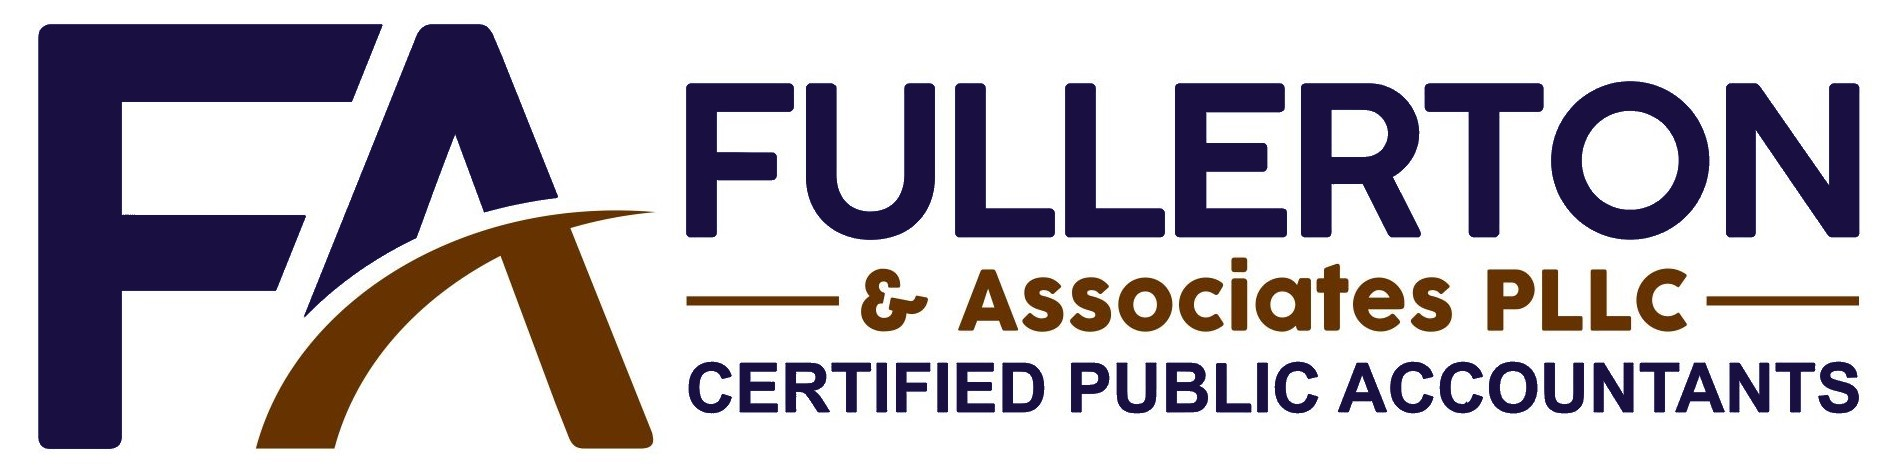 Abilene, Texas CPA Firm | Our Values Page | Fullerton & Associates PLLC